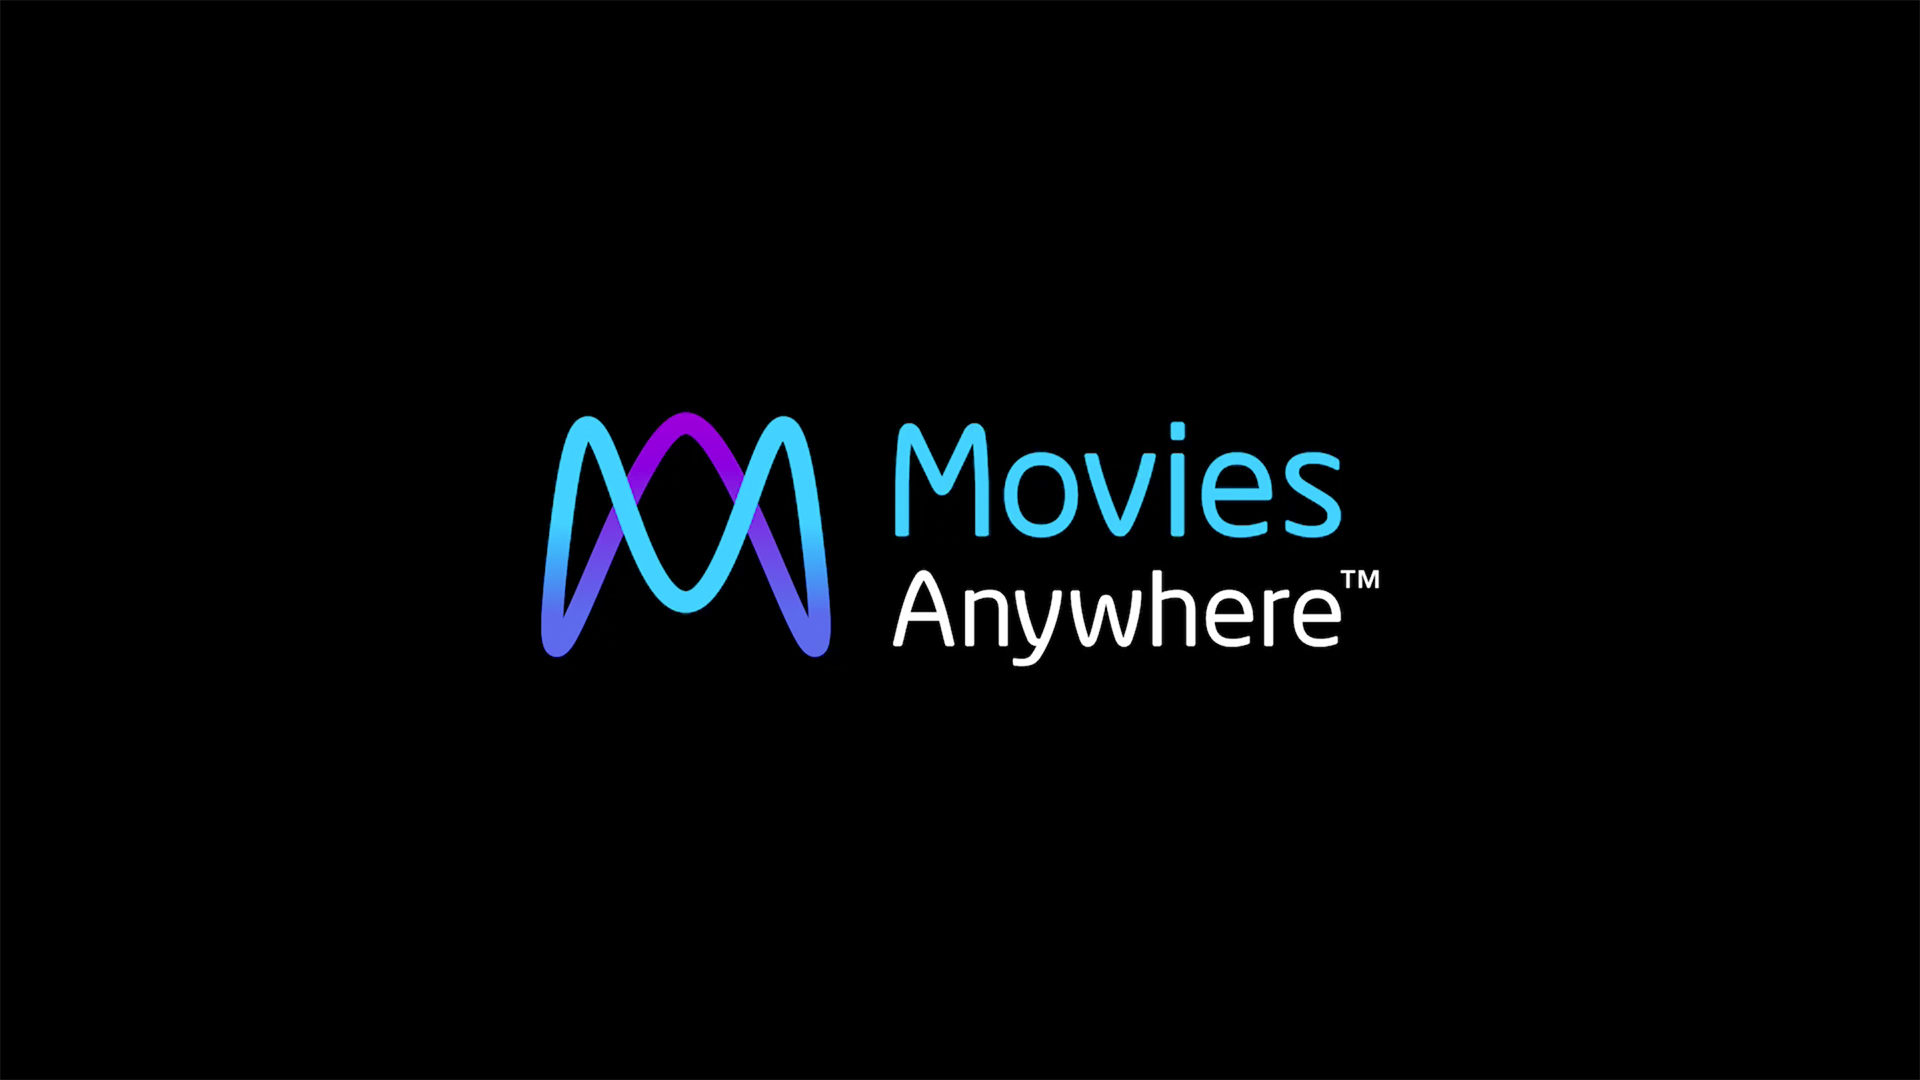 anywhere movies app lab fox moviesanywhere etcentric tv ultraviolet ces innovation highlights